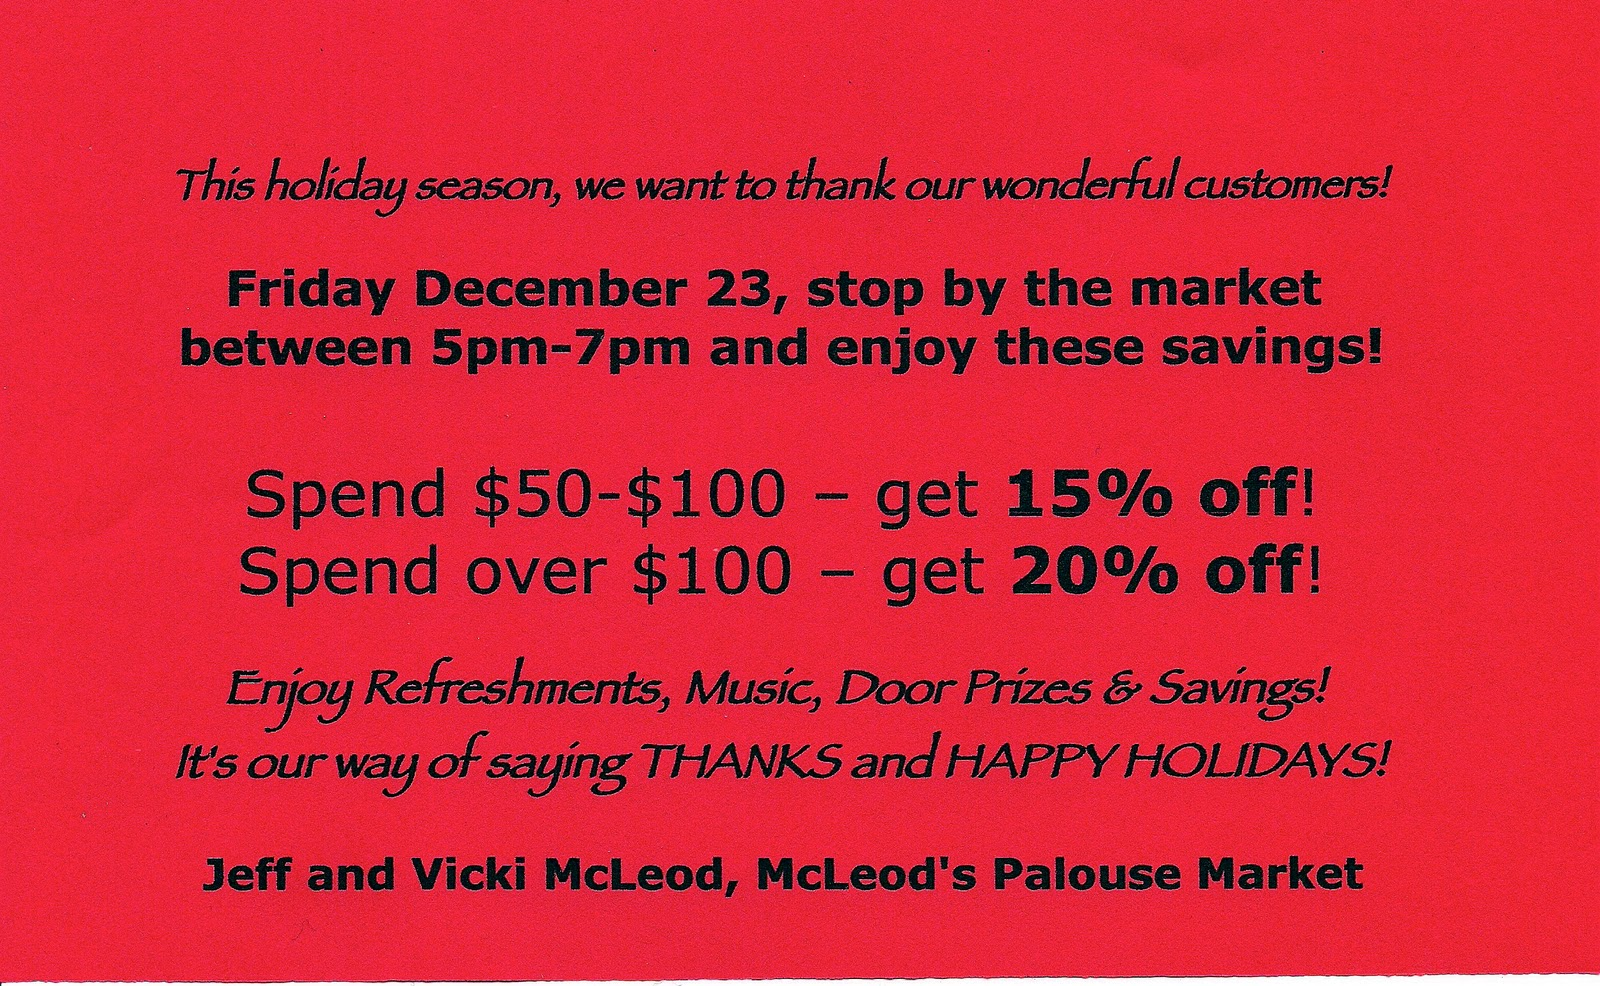 Happy Holidays And Thanks To All >> Mcleod S Palouse Market Thanks And Happy Holidays